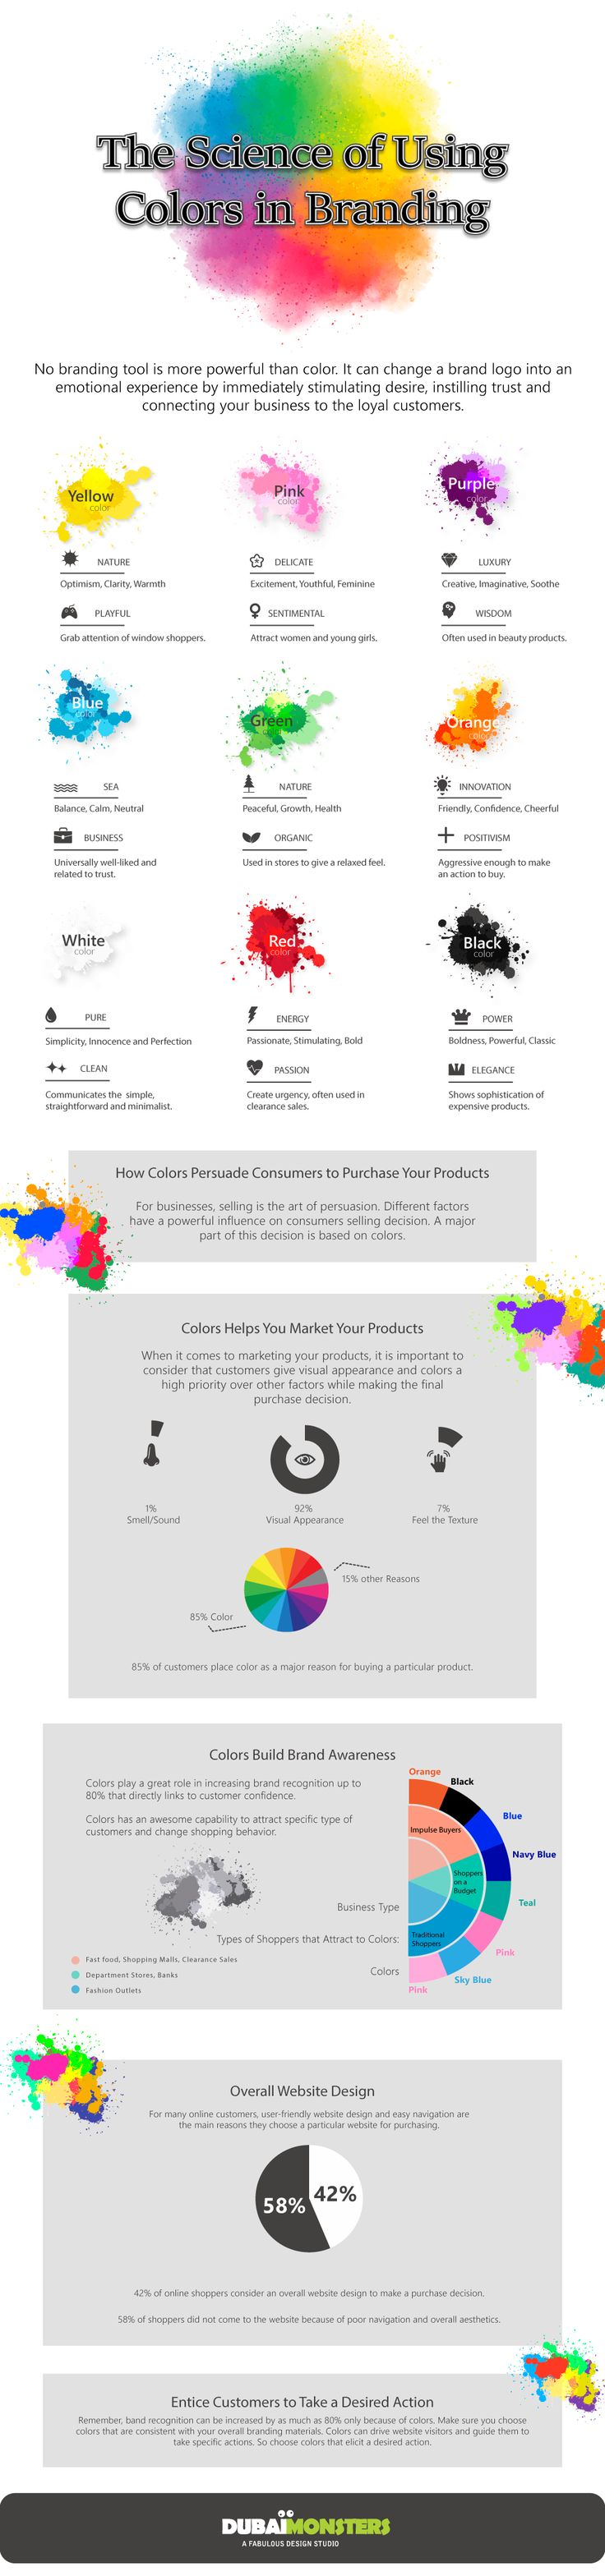 The Science of Using Colors in Branding #Infographic #Colors #Branding